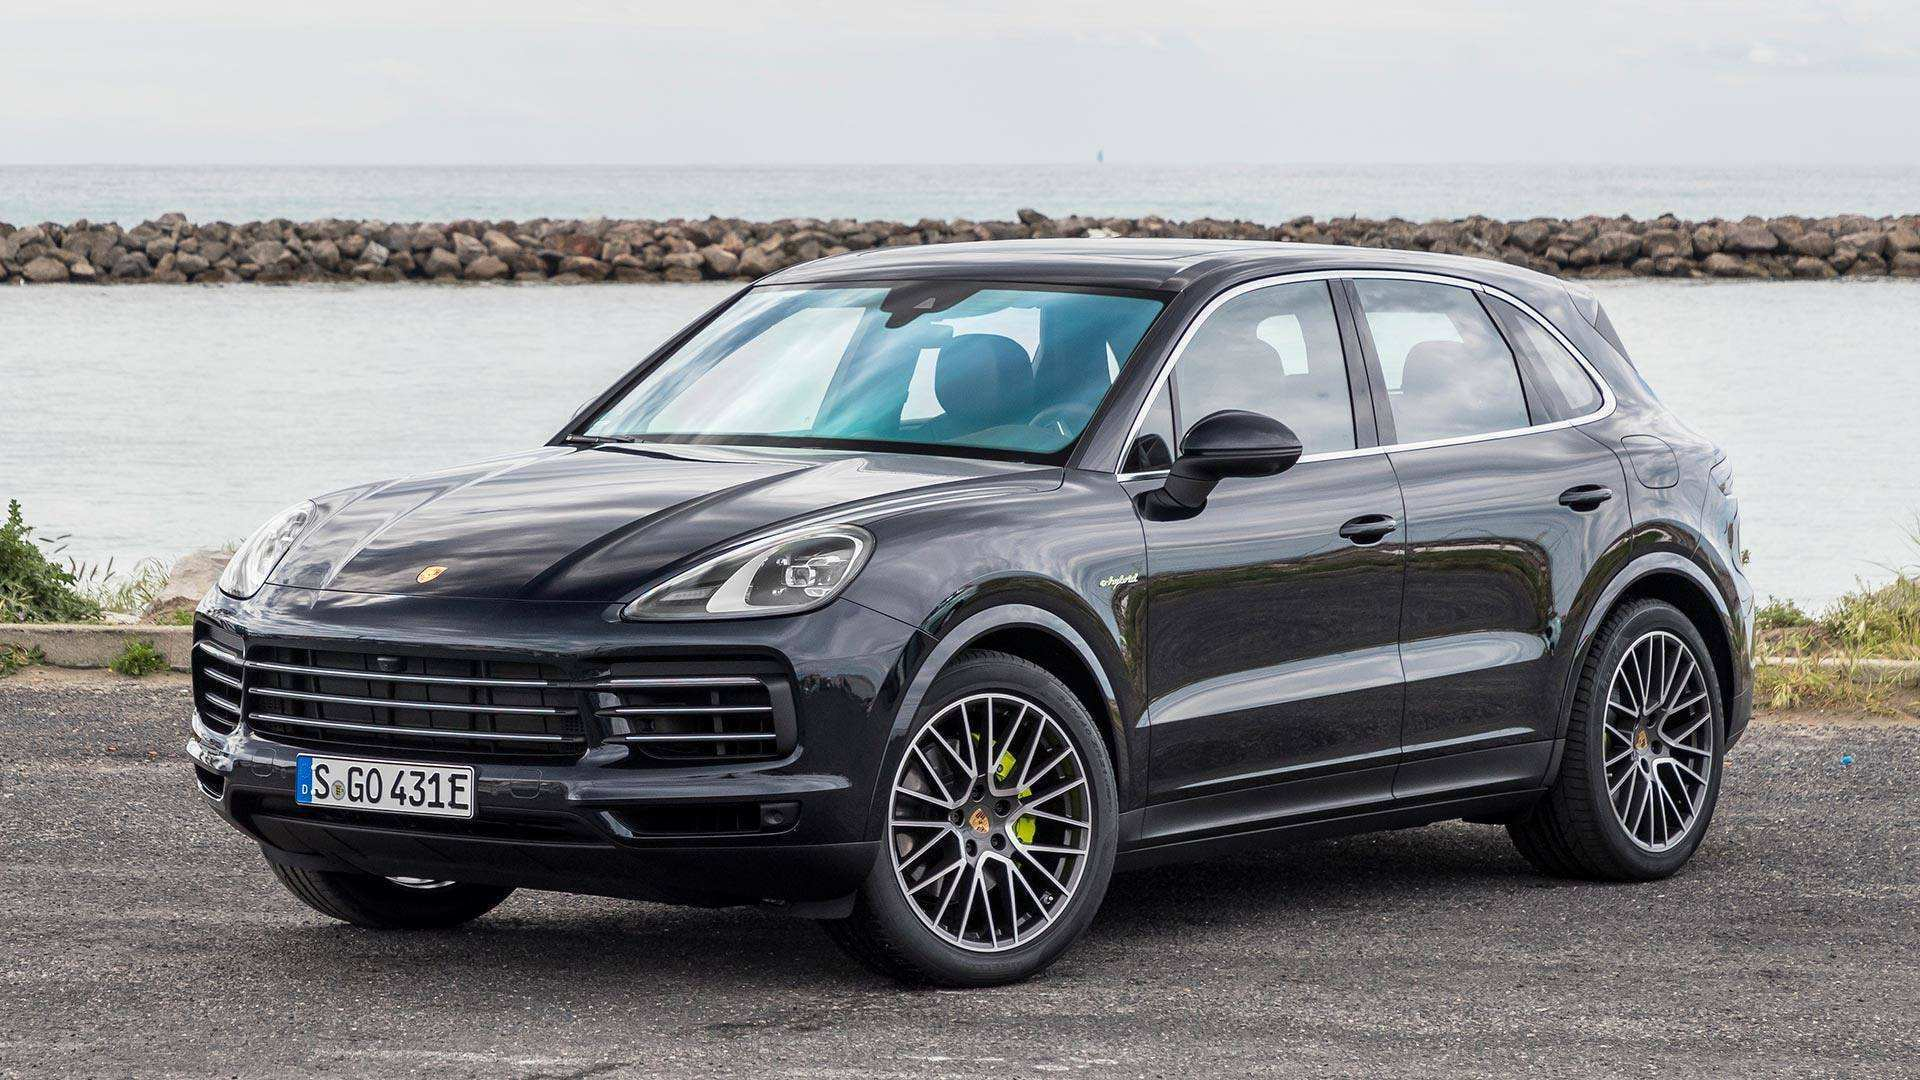 62 The 2019 Porsche Cayenne Model Review And Release Date